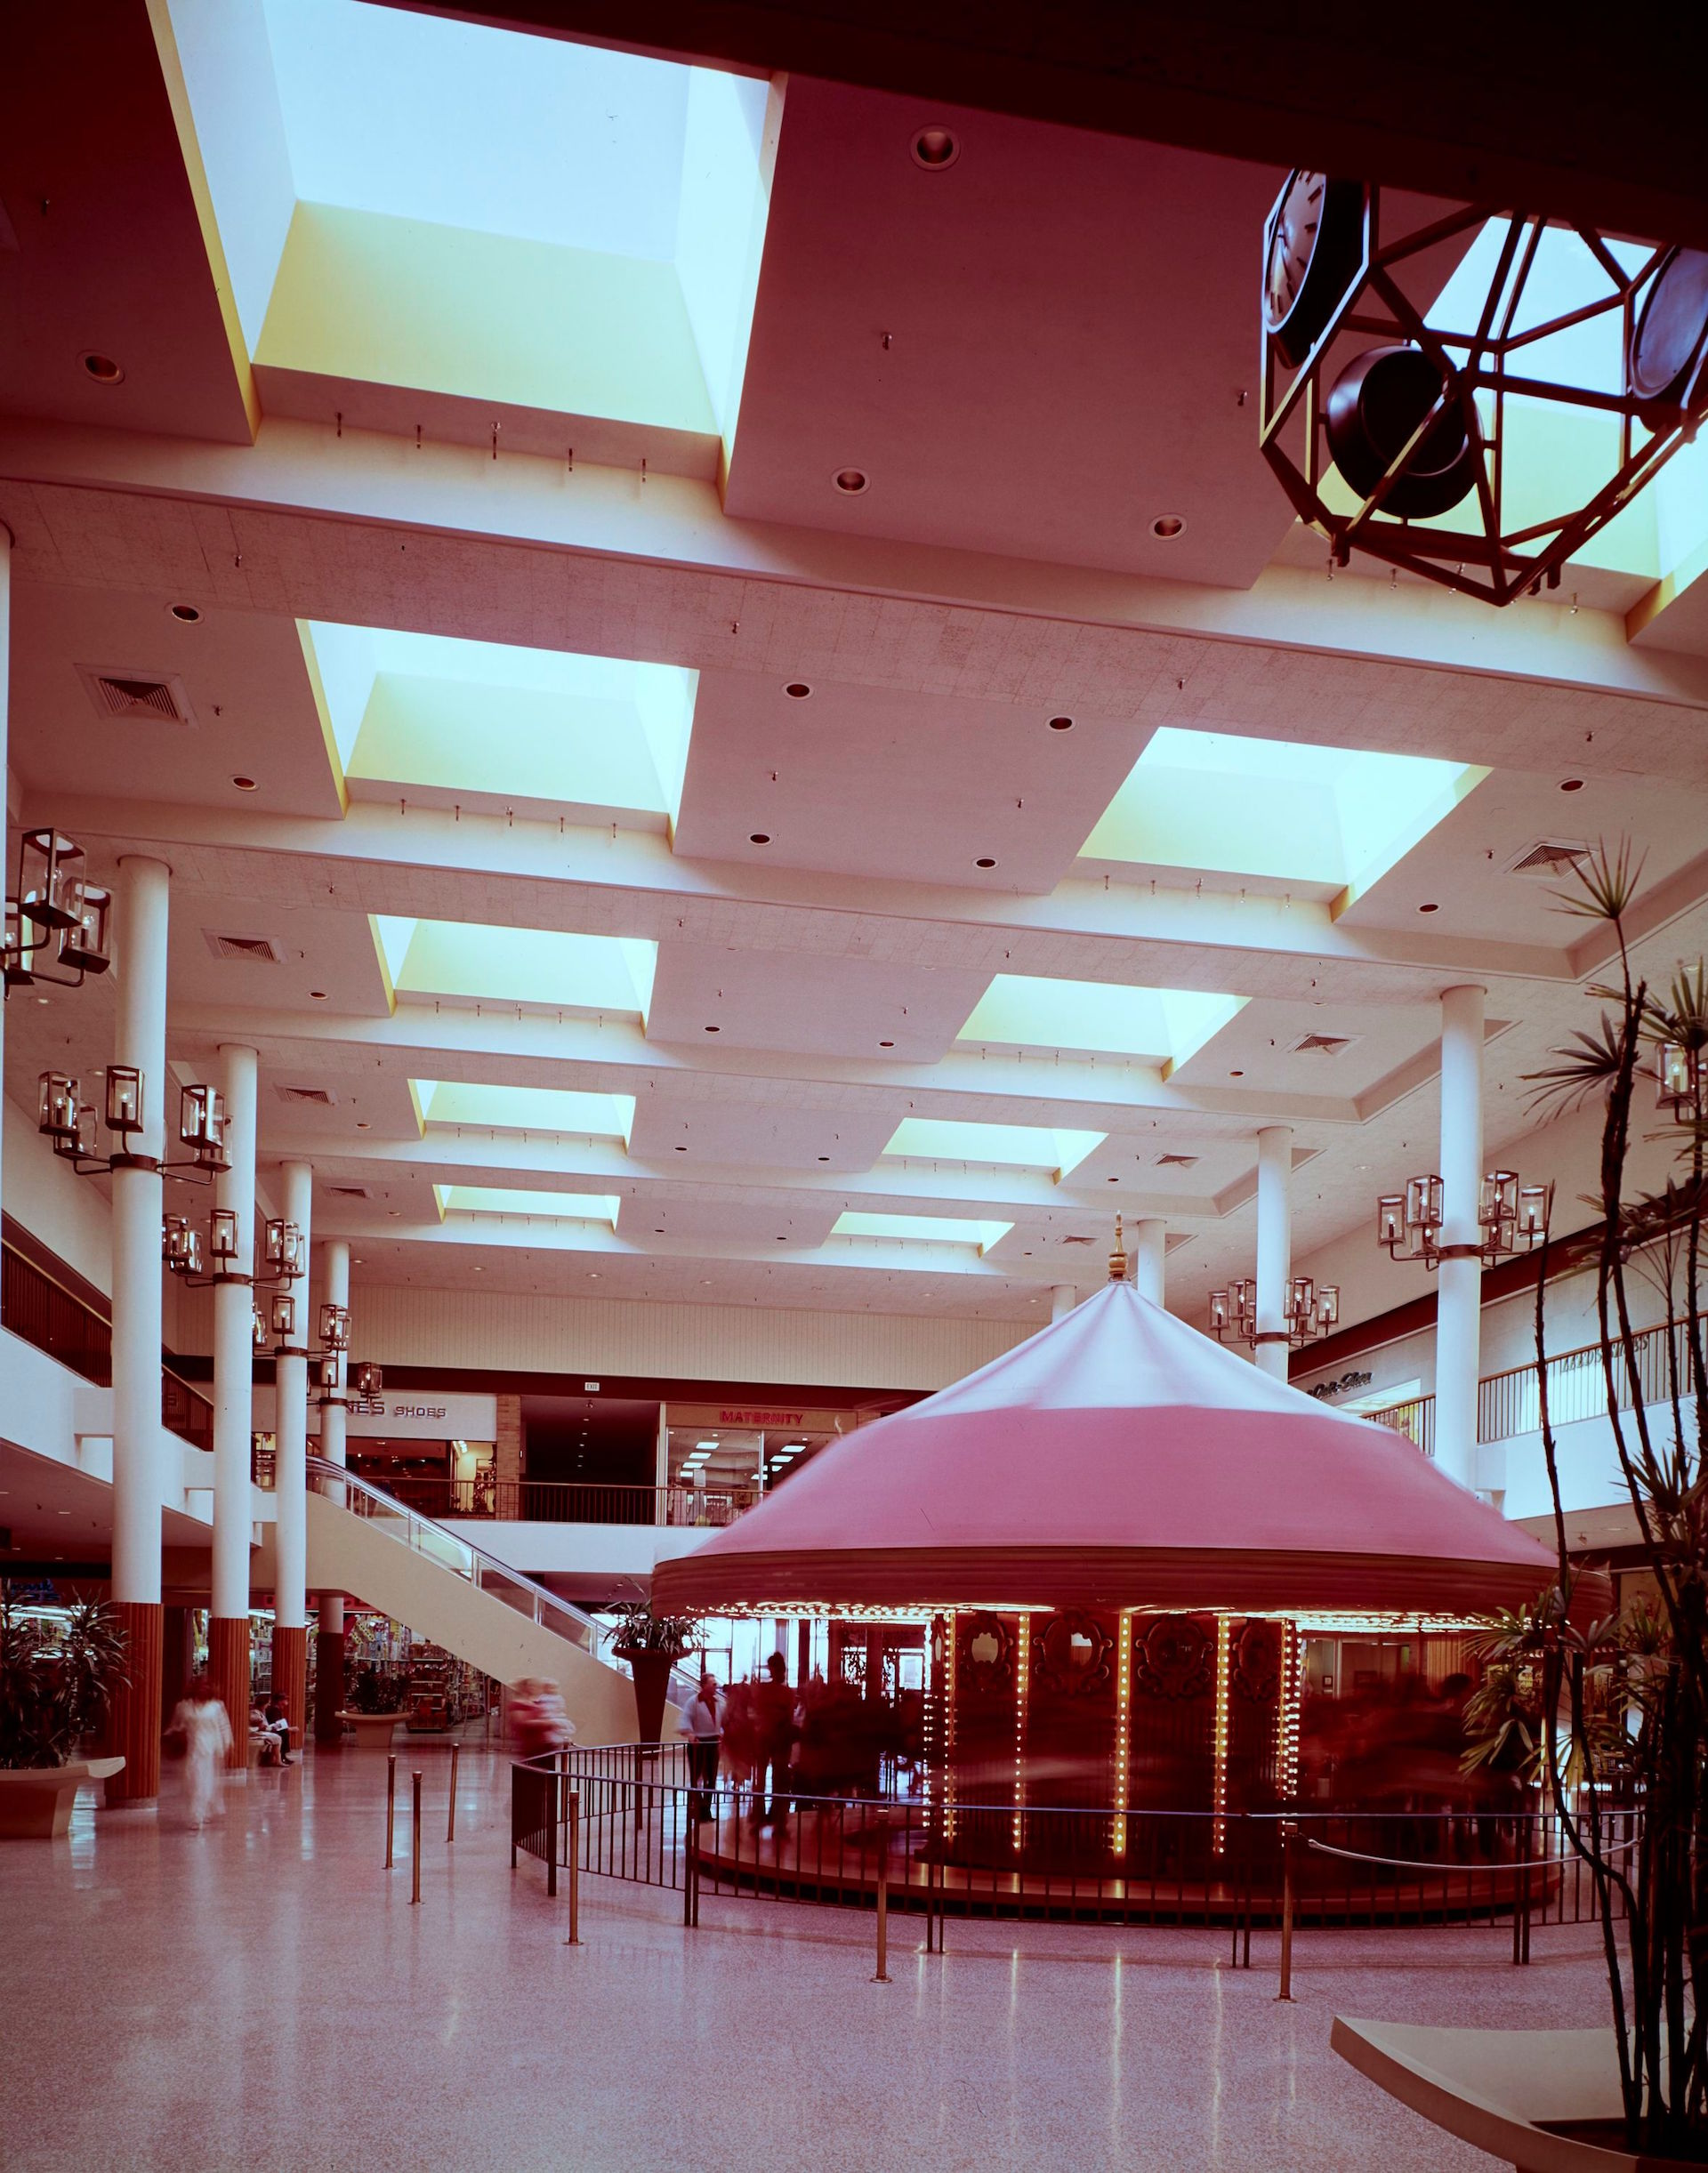 South Coast Plaza interior